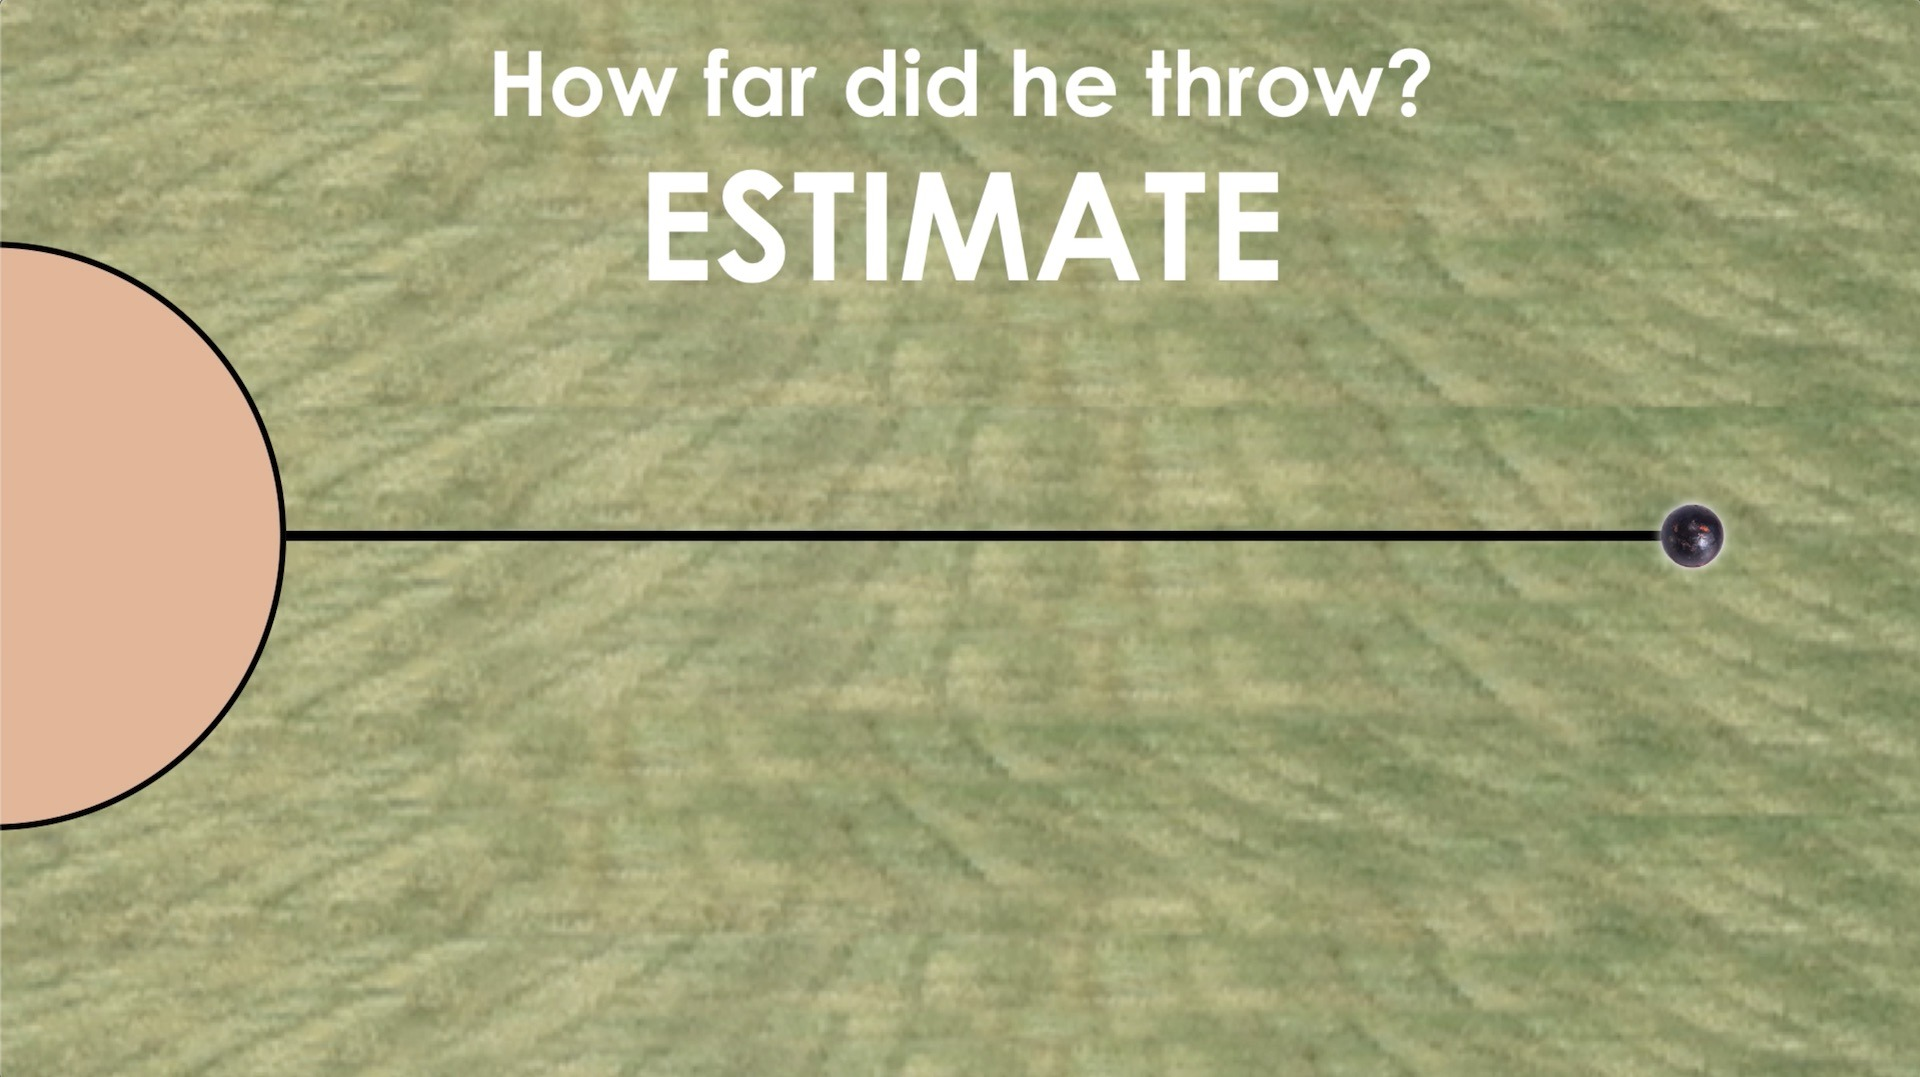 Shot Put 02 Sense Making Estimates and Prompt image sm